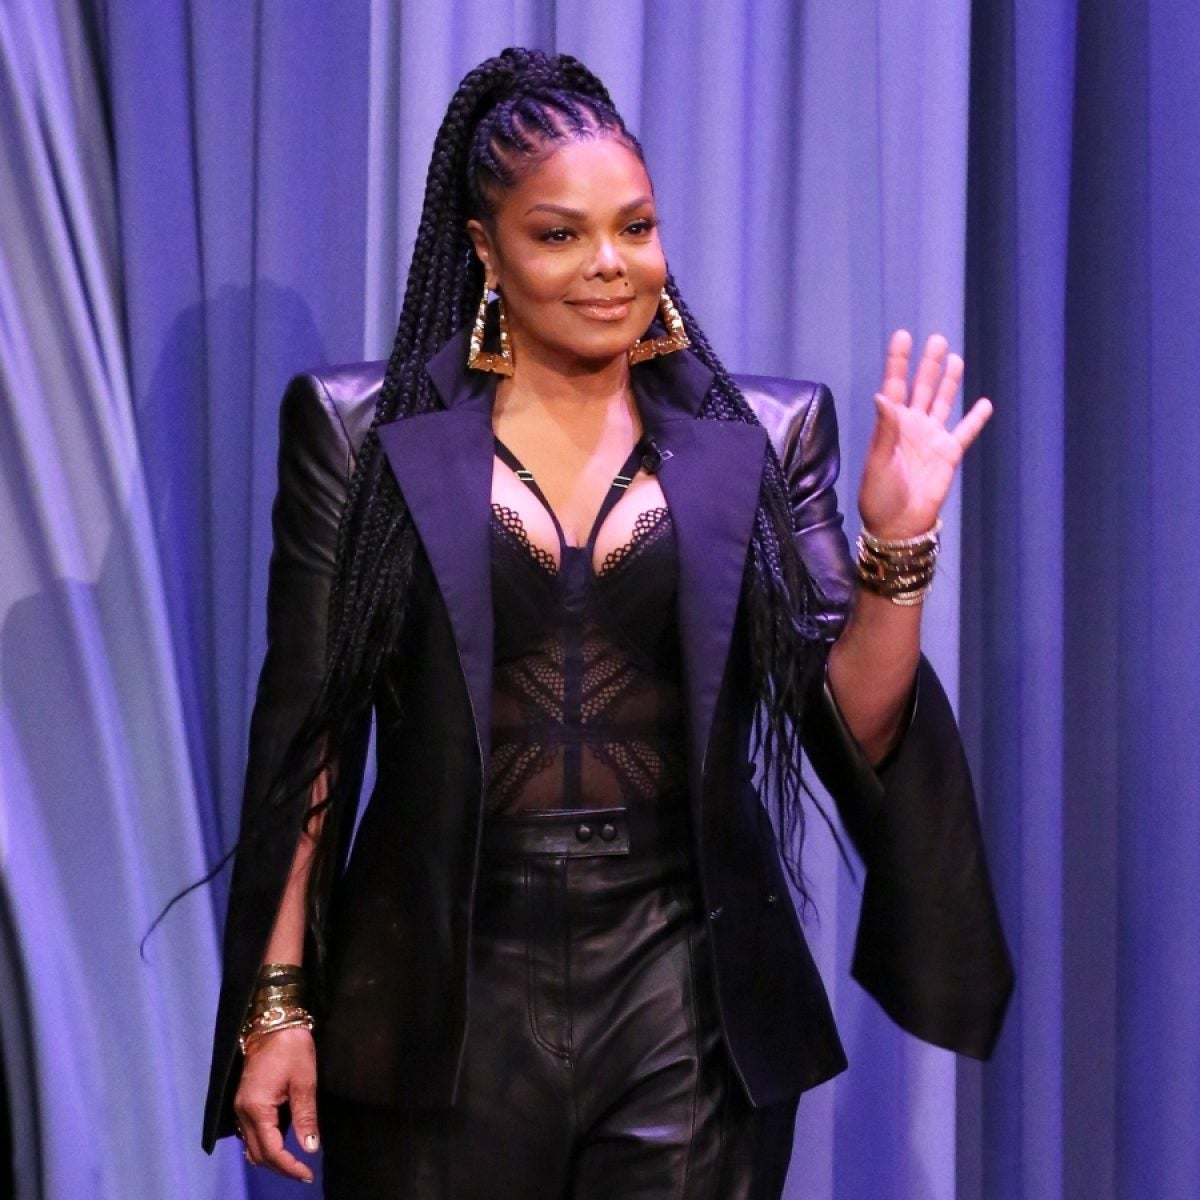 Watch The Teaser For Janet Jackson's Upcoming Documentary